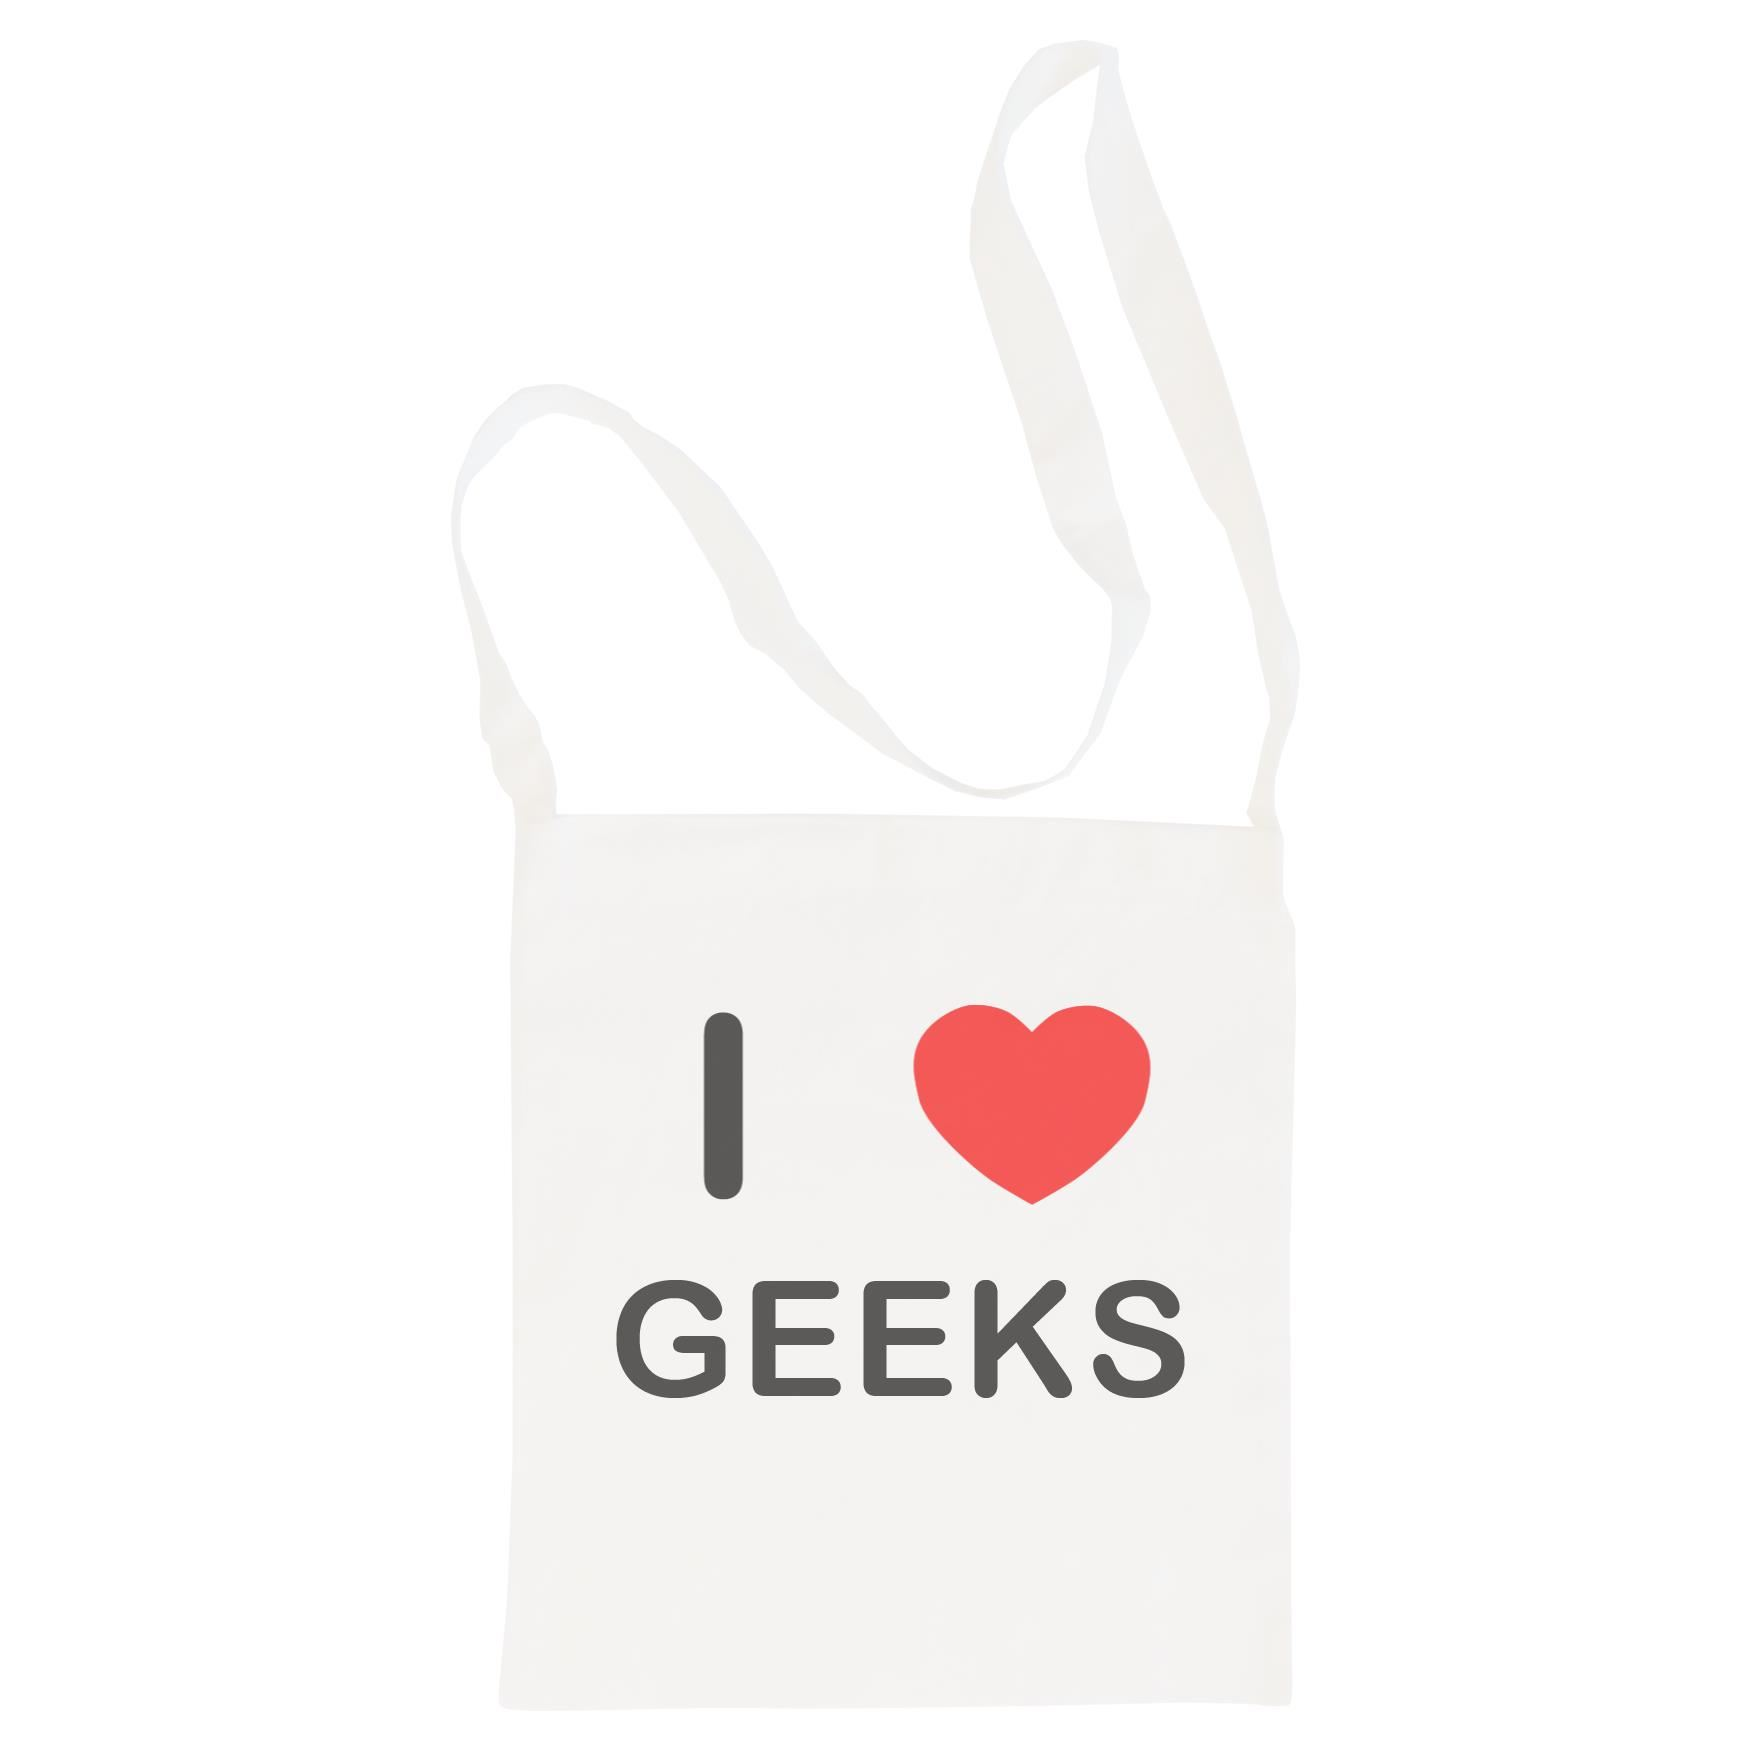 I Love Geeks - Cotton Bag | Size choice Tote, Shopper or Sling